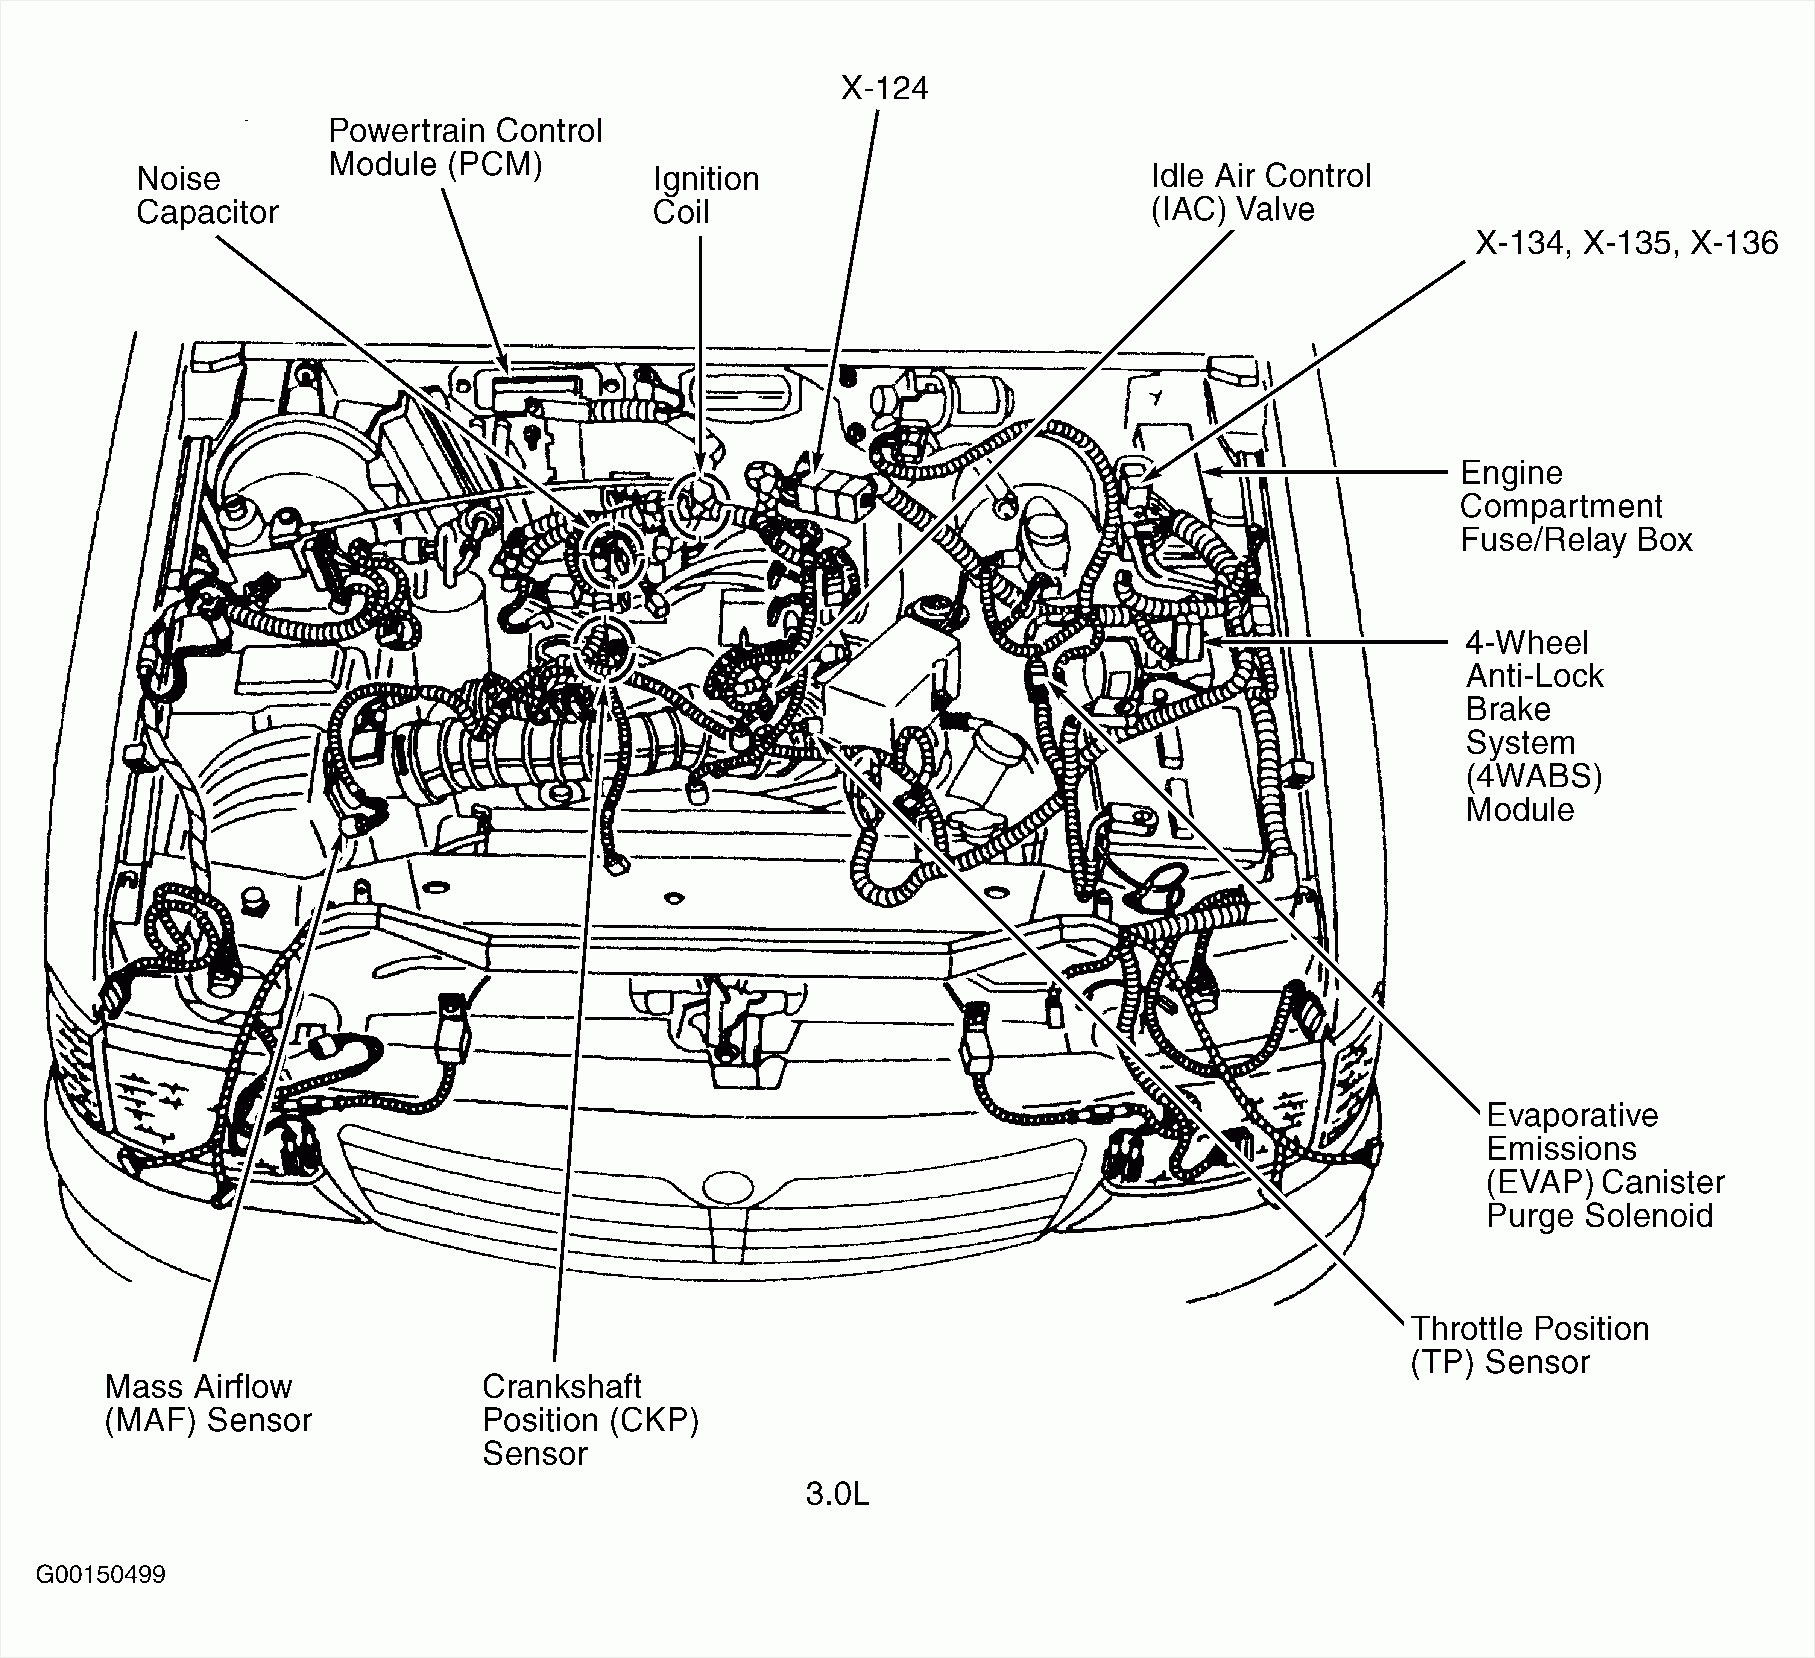 1994 Ford Probe Engine Diagram Online Manuual Of Wiring Images Gallery